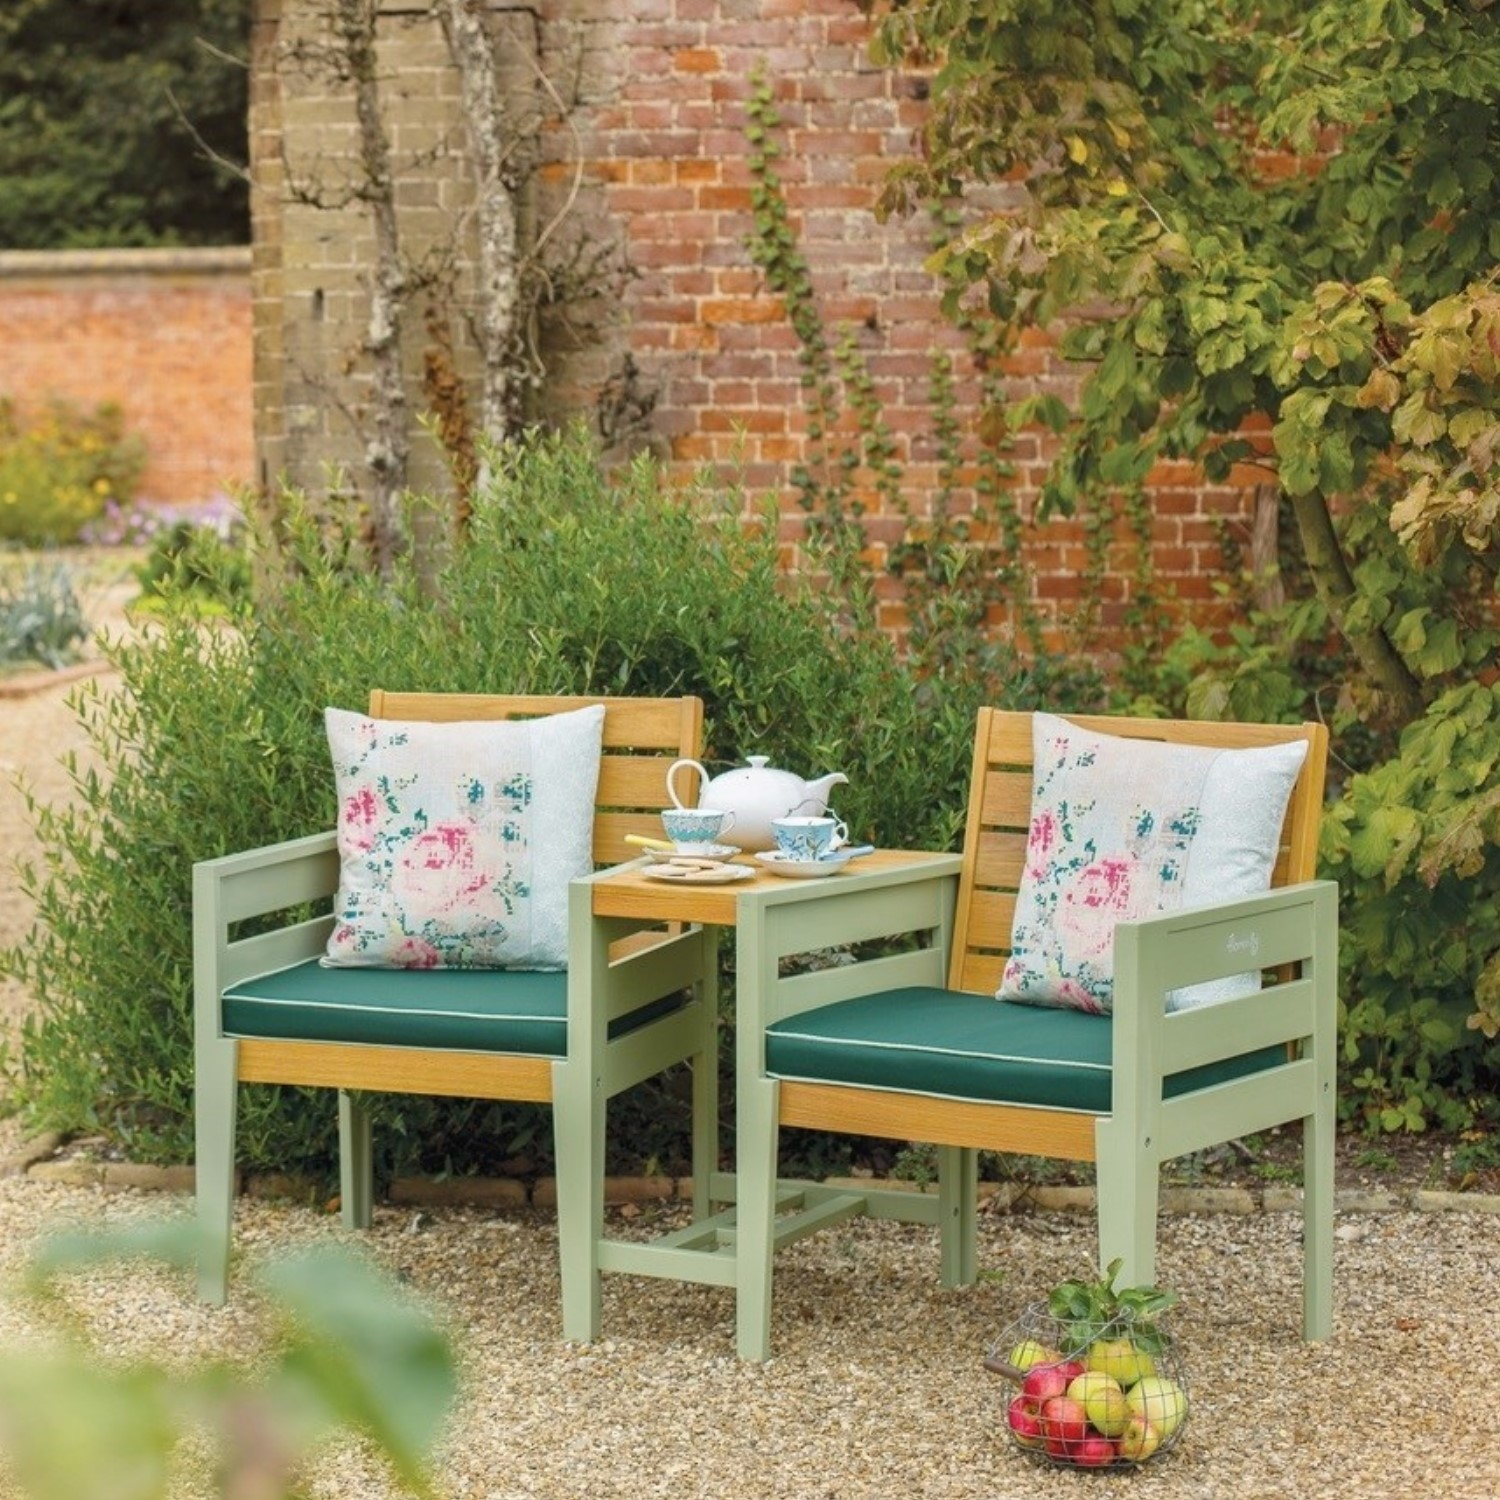 Verdi 12 Seater Garden Love Seat with Table in Green